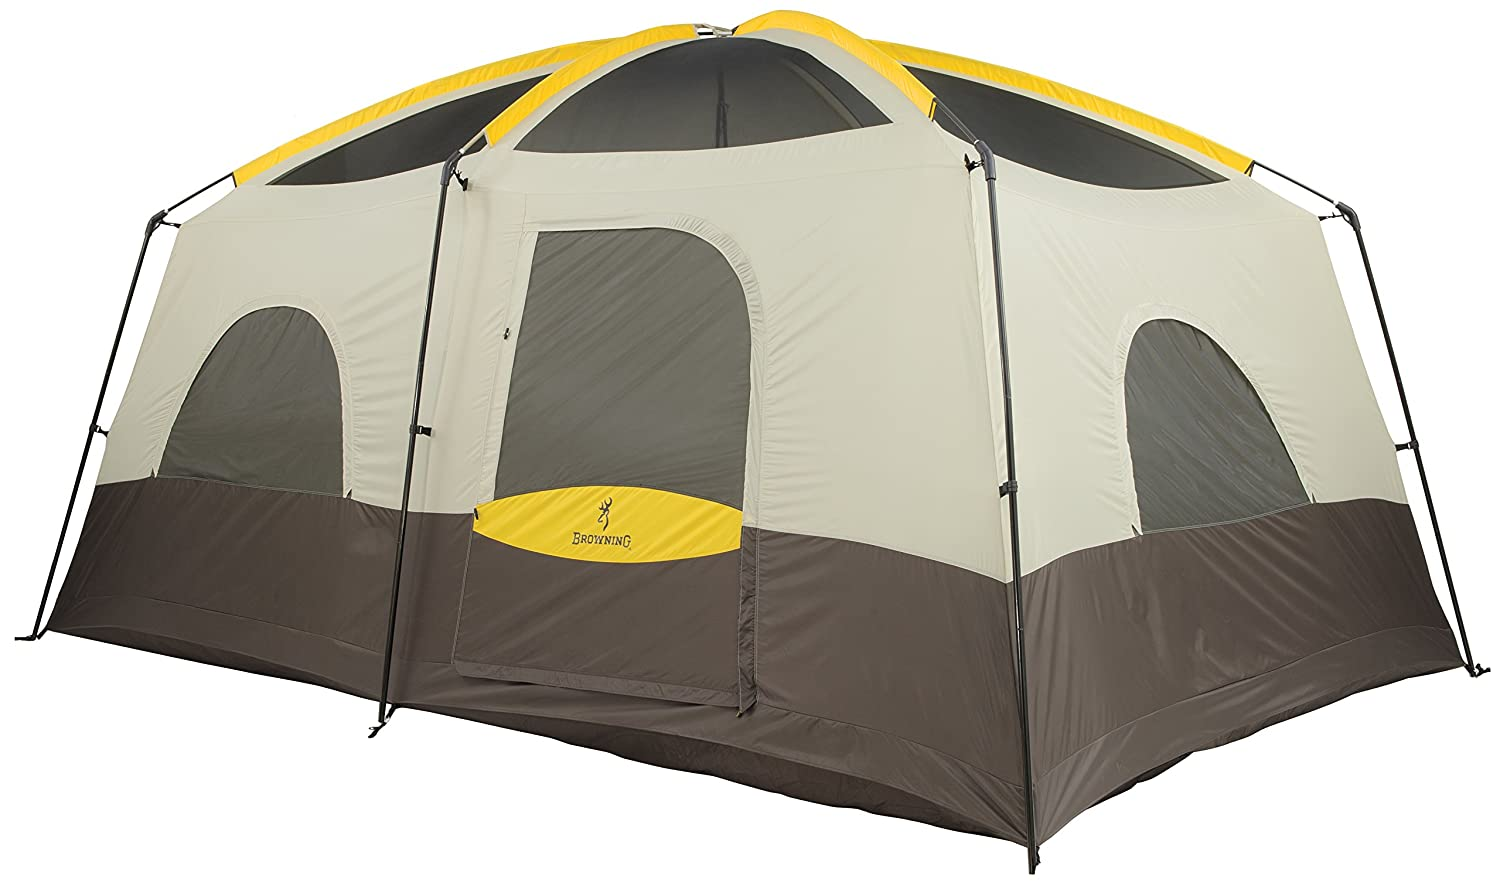 Top 5 Best Tents For Rain  sc 1 st  The C&ing Trips & The Best Tents for Rain - Wet-weather Camping Essentials